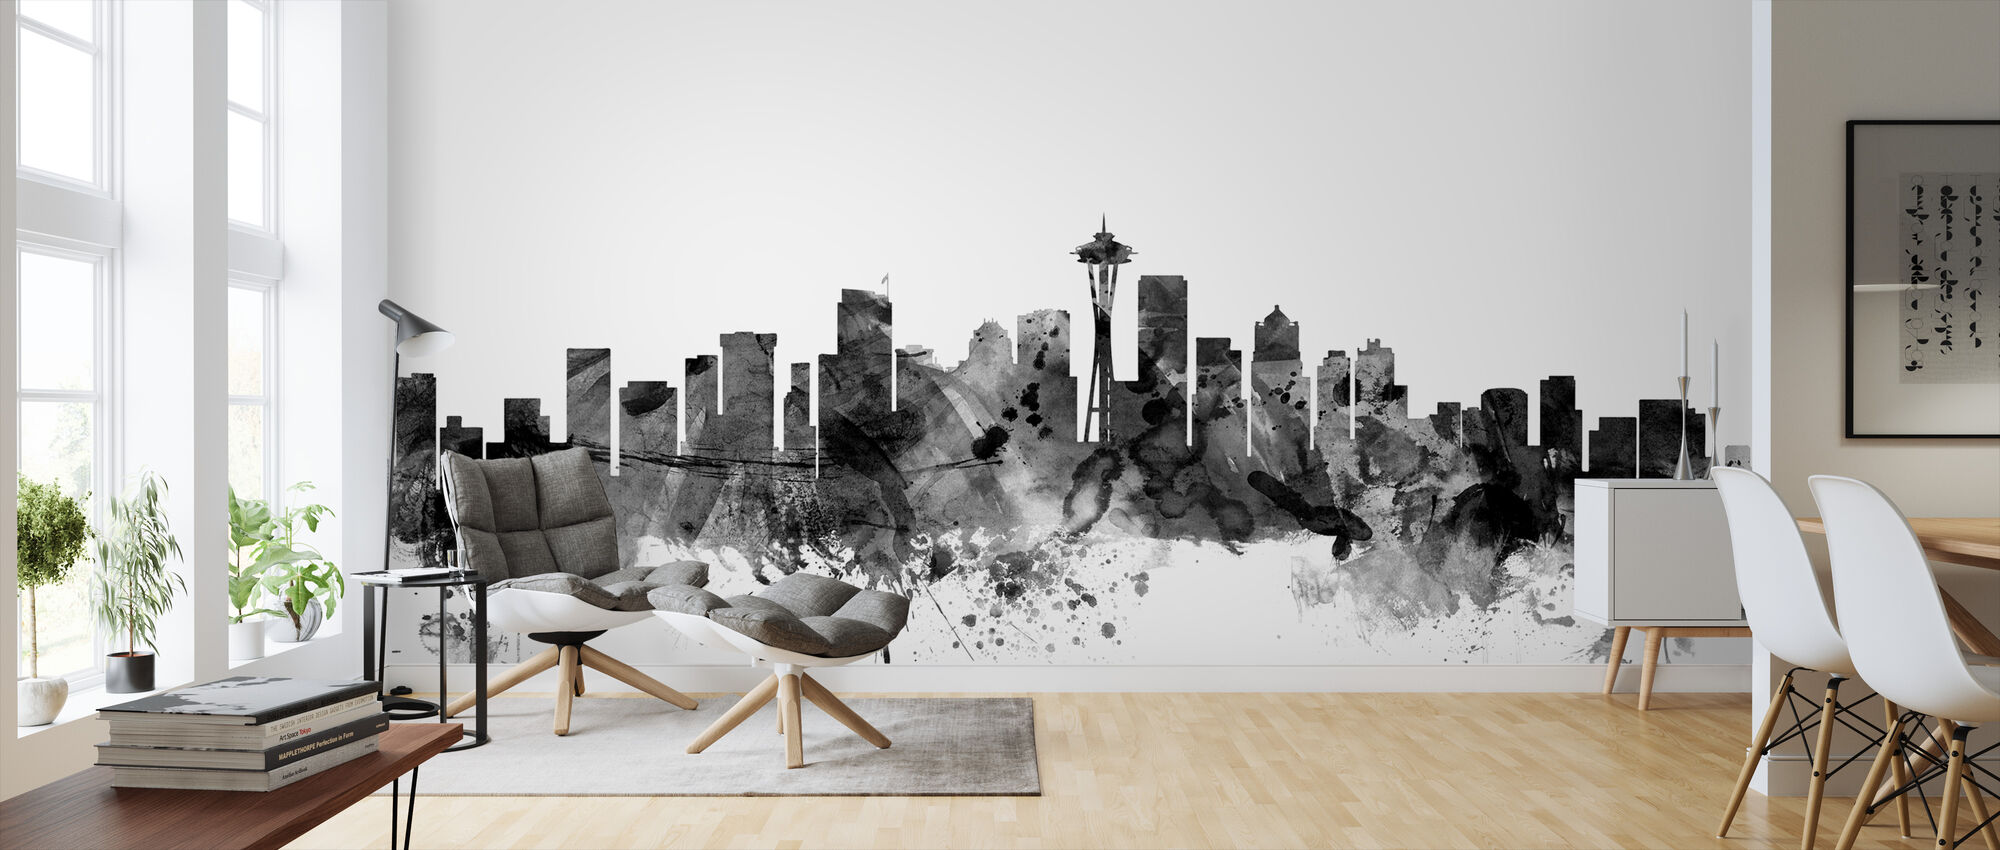 Seattle Skyline Black - Wallpaper - Living Room